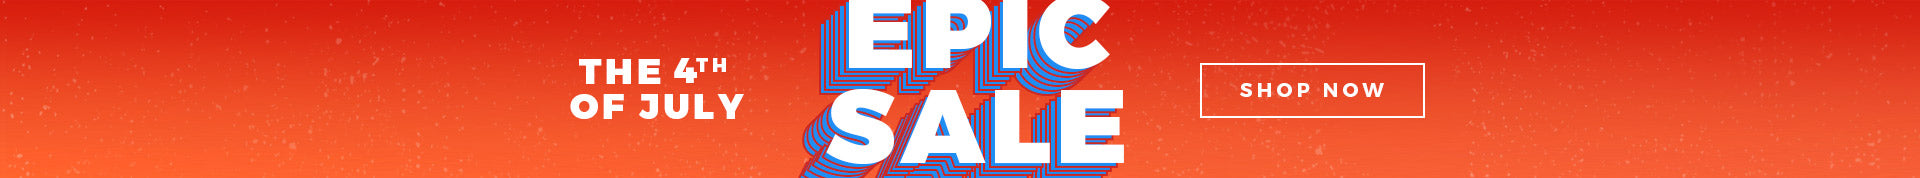 4TH OF JULY EPIC SALE - Shop Now